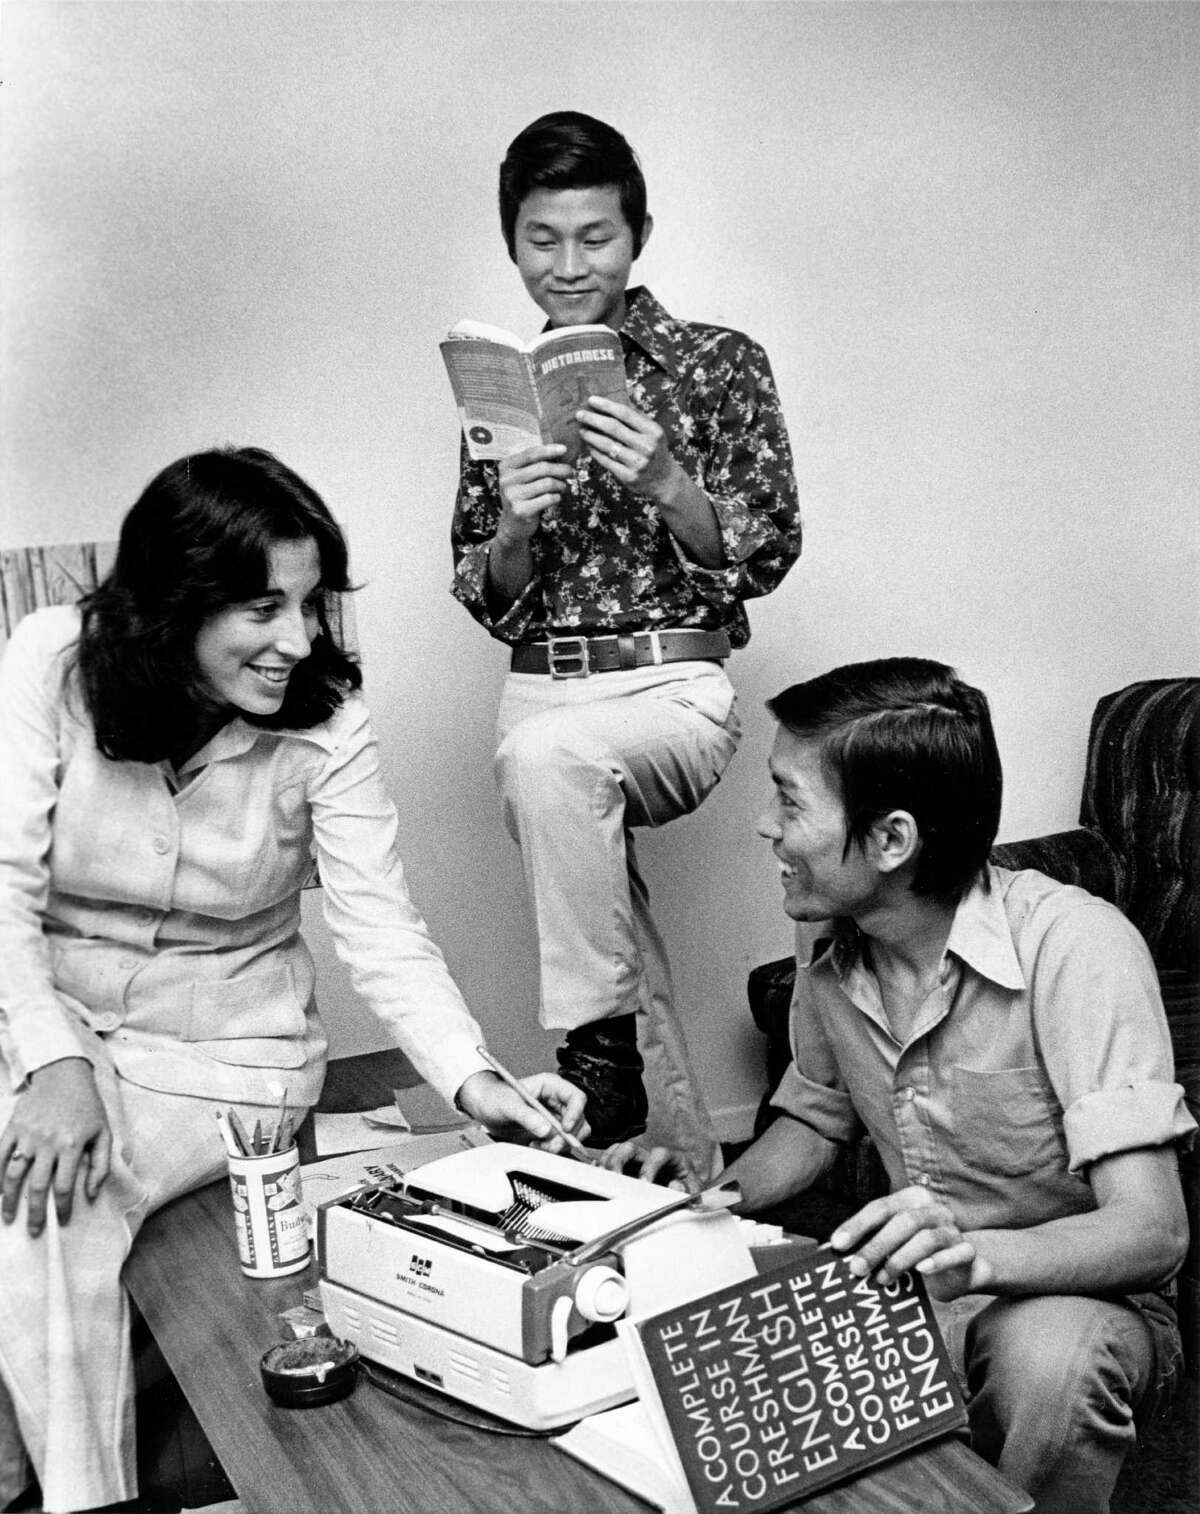 08/21/1975 - (L-R) Wendy Smolins, with the Jewish Family Service, advises Vietnamese refugees Nguyen Van Tu and Nguyen Van Hoa. The local agency is sponsoring 25 Asian refugees in the Houston area; mostly helping them find jobs and learn English.